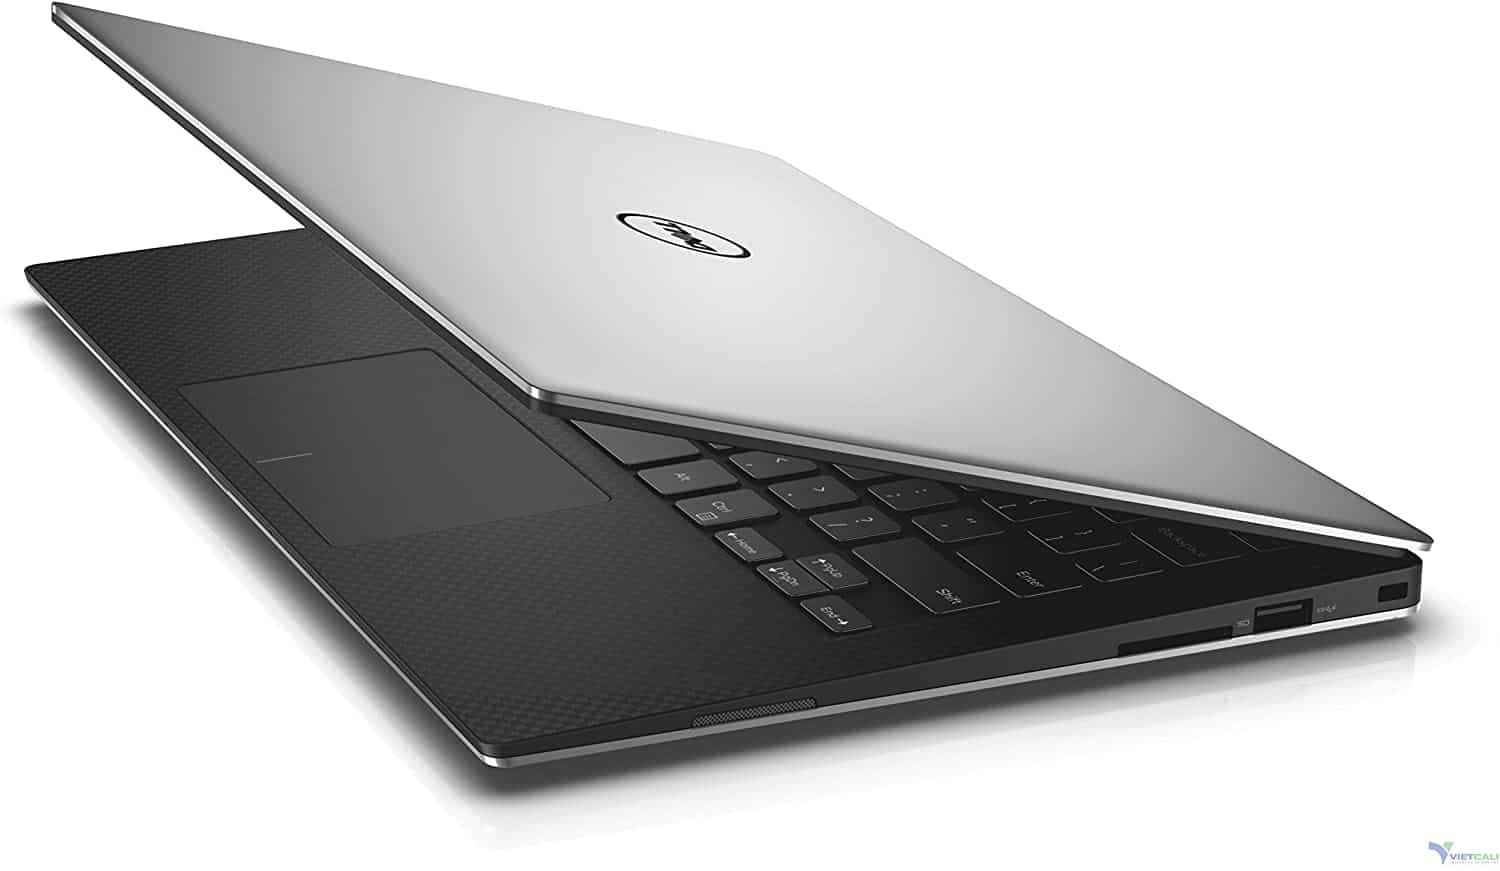 Image of Dell XPS recommended as best laptop for medical school